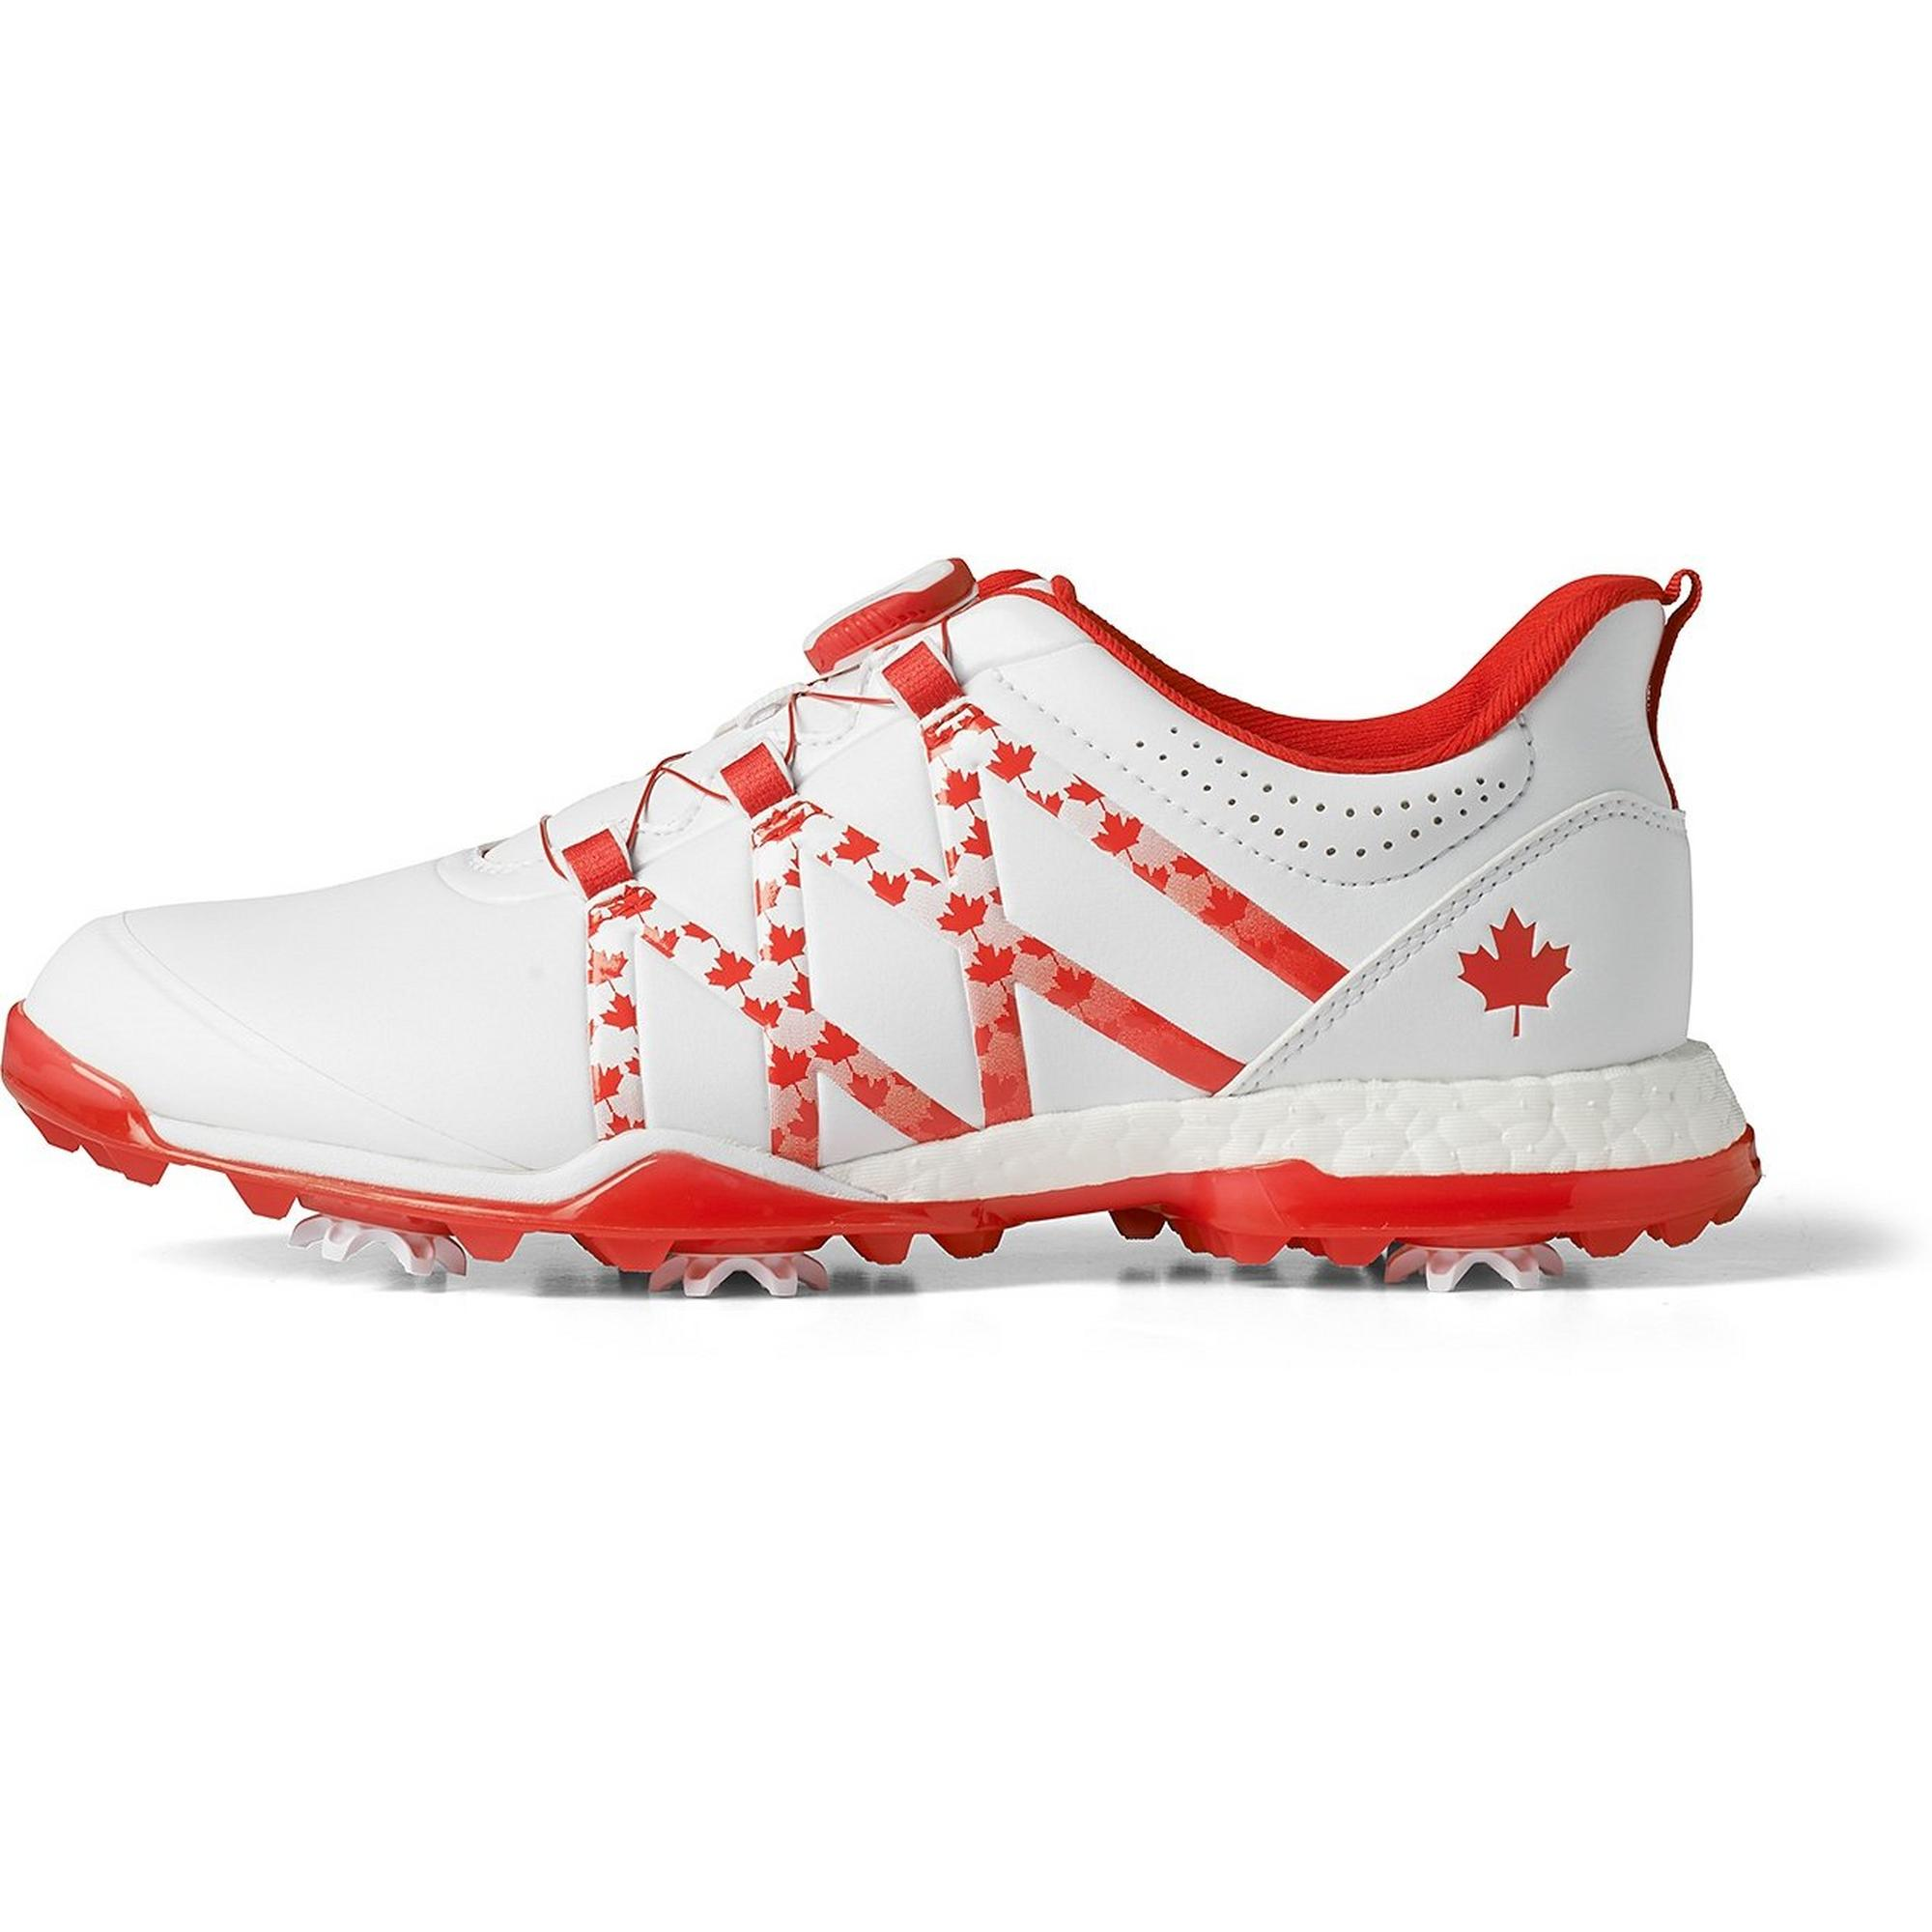 Chaussures Adipower Boost Boa à crampons pour femmes – Blanc/Rouge